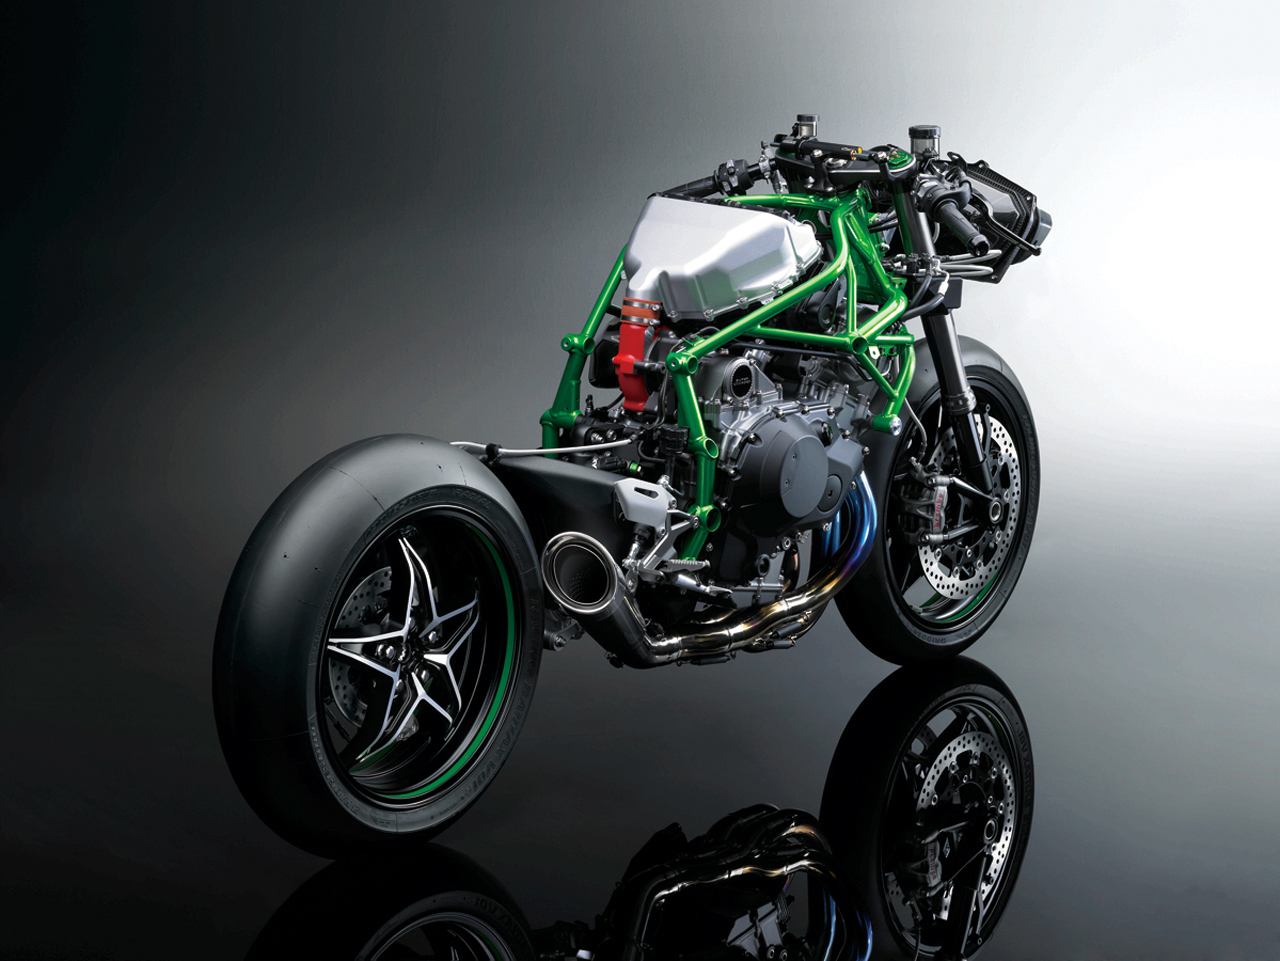 Kawasaki Ninja H2R Photo Gallery